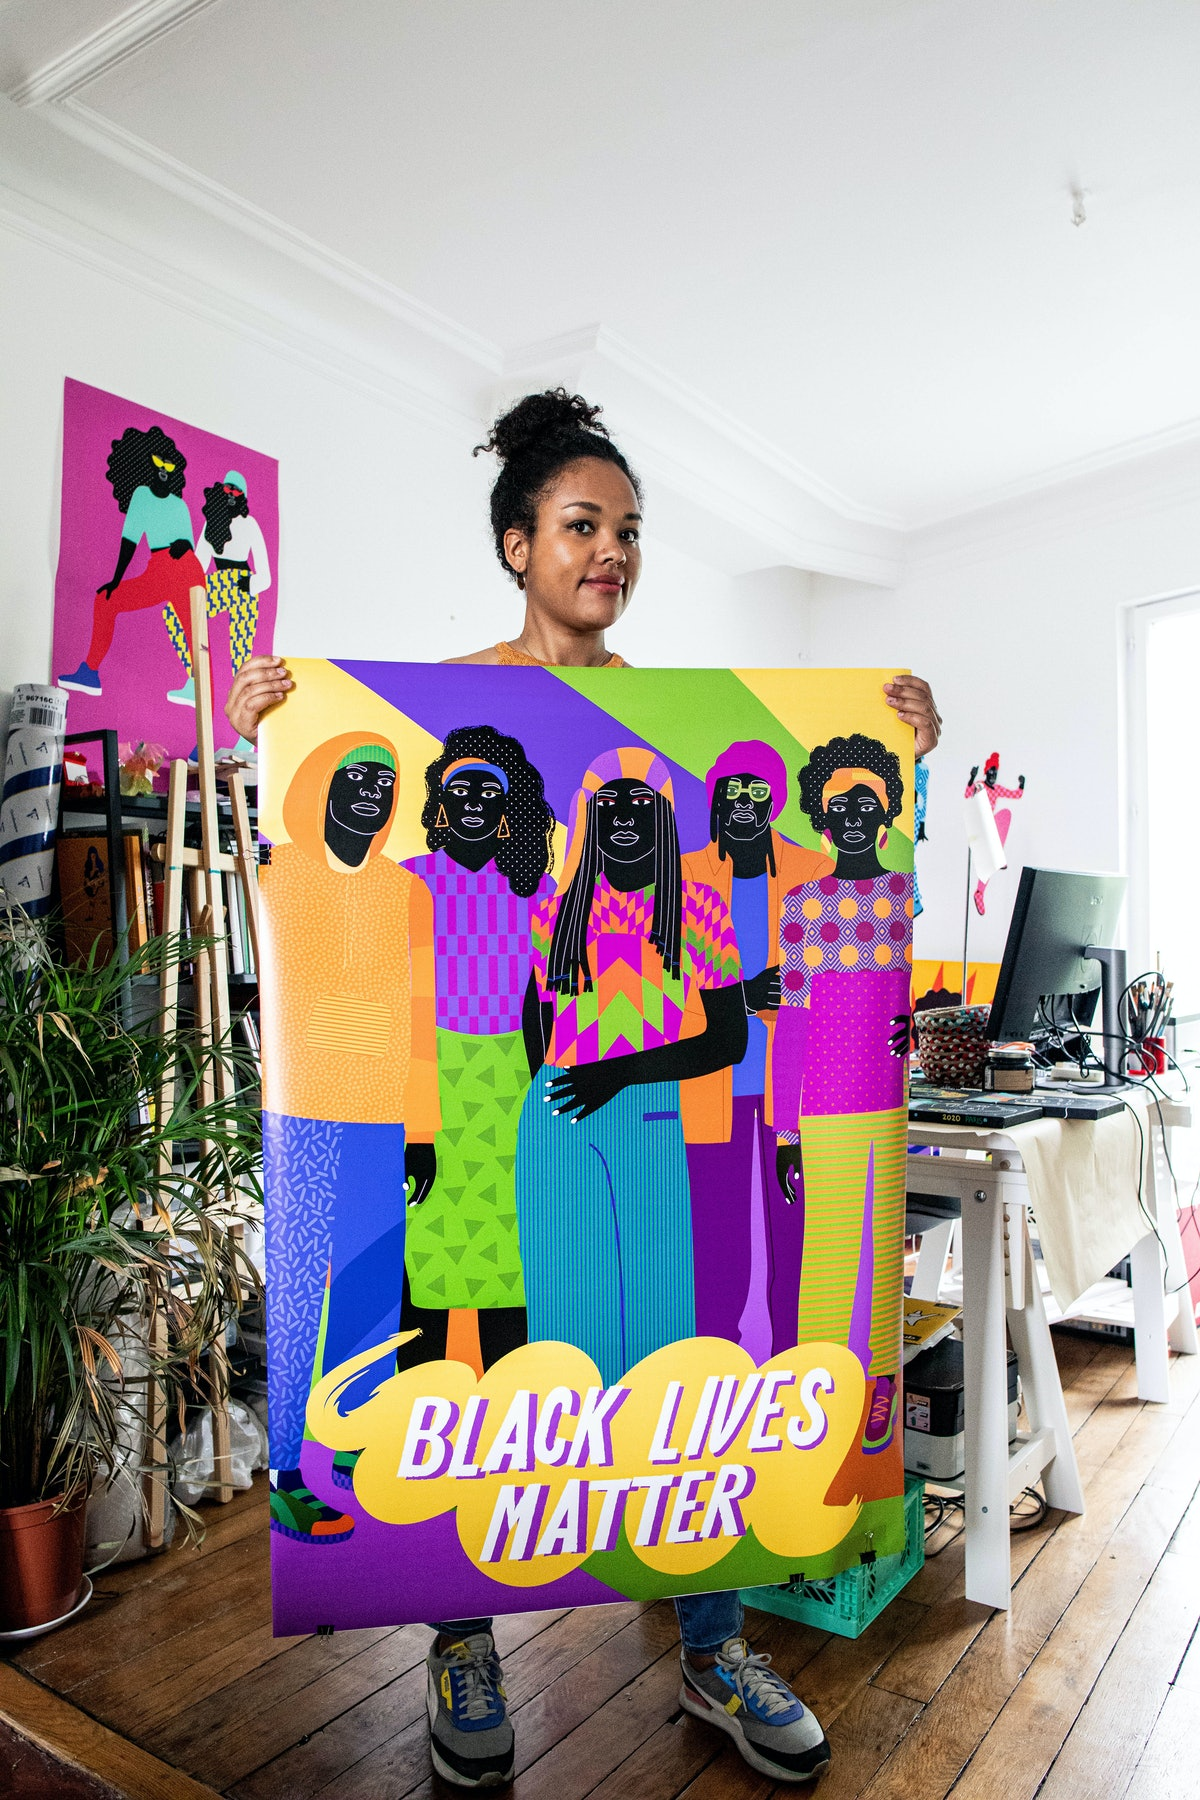 Durand says she likes that her work is influenced by Black Lives Matter and other causes that are im...